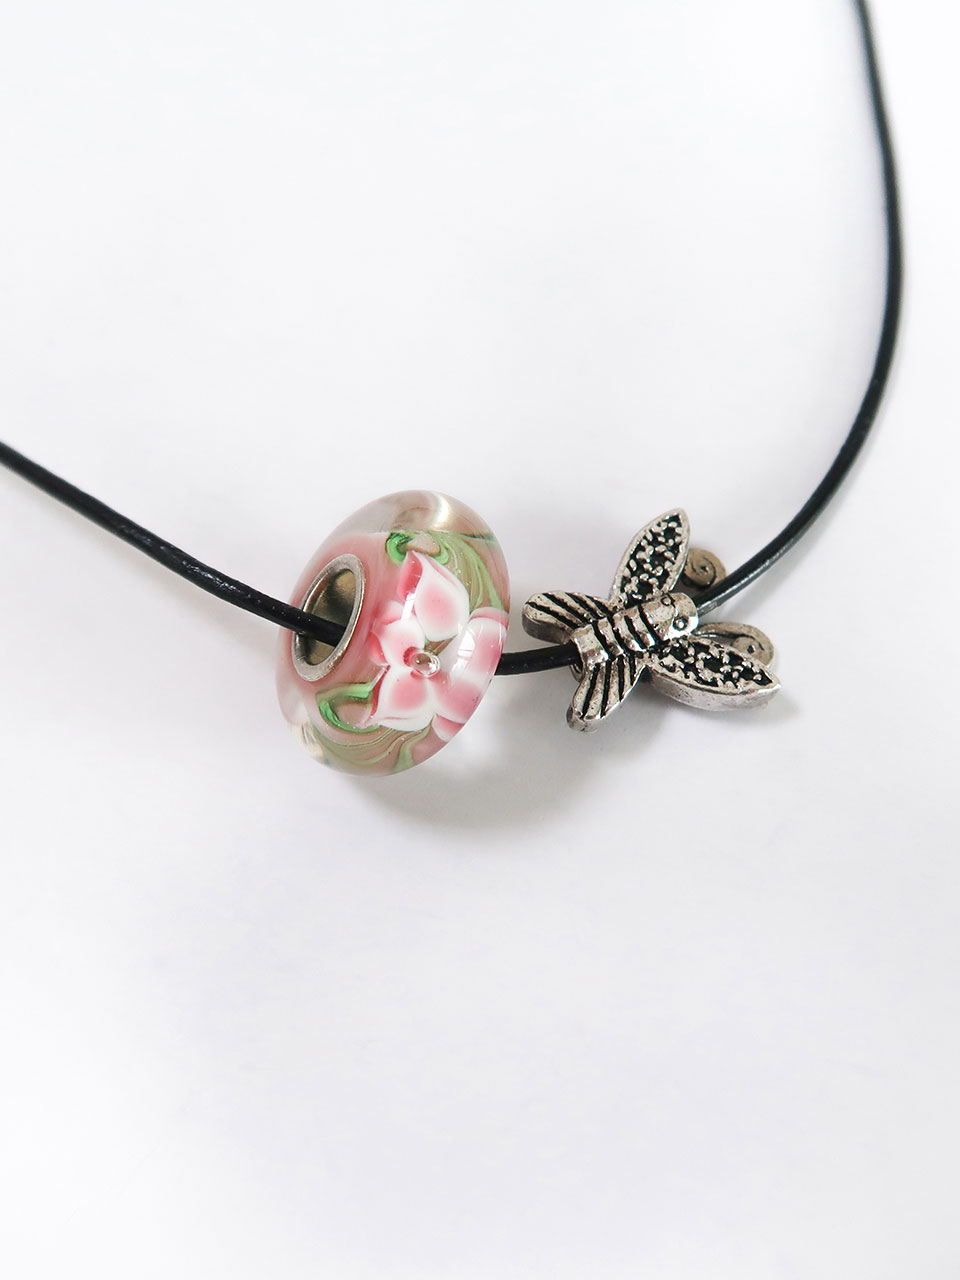 ciols made)flower trollbeads necklace(13type)